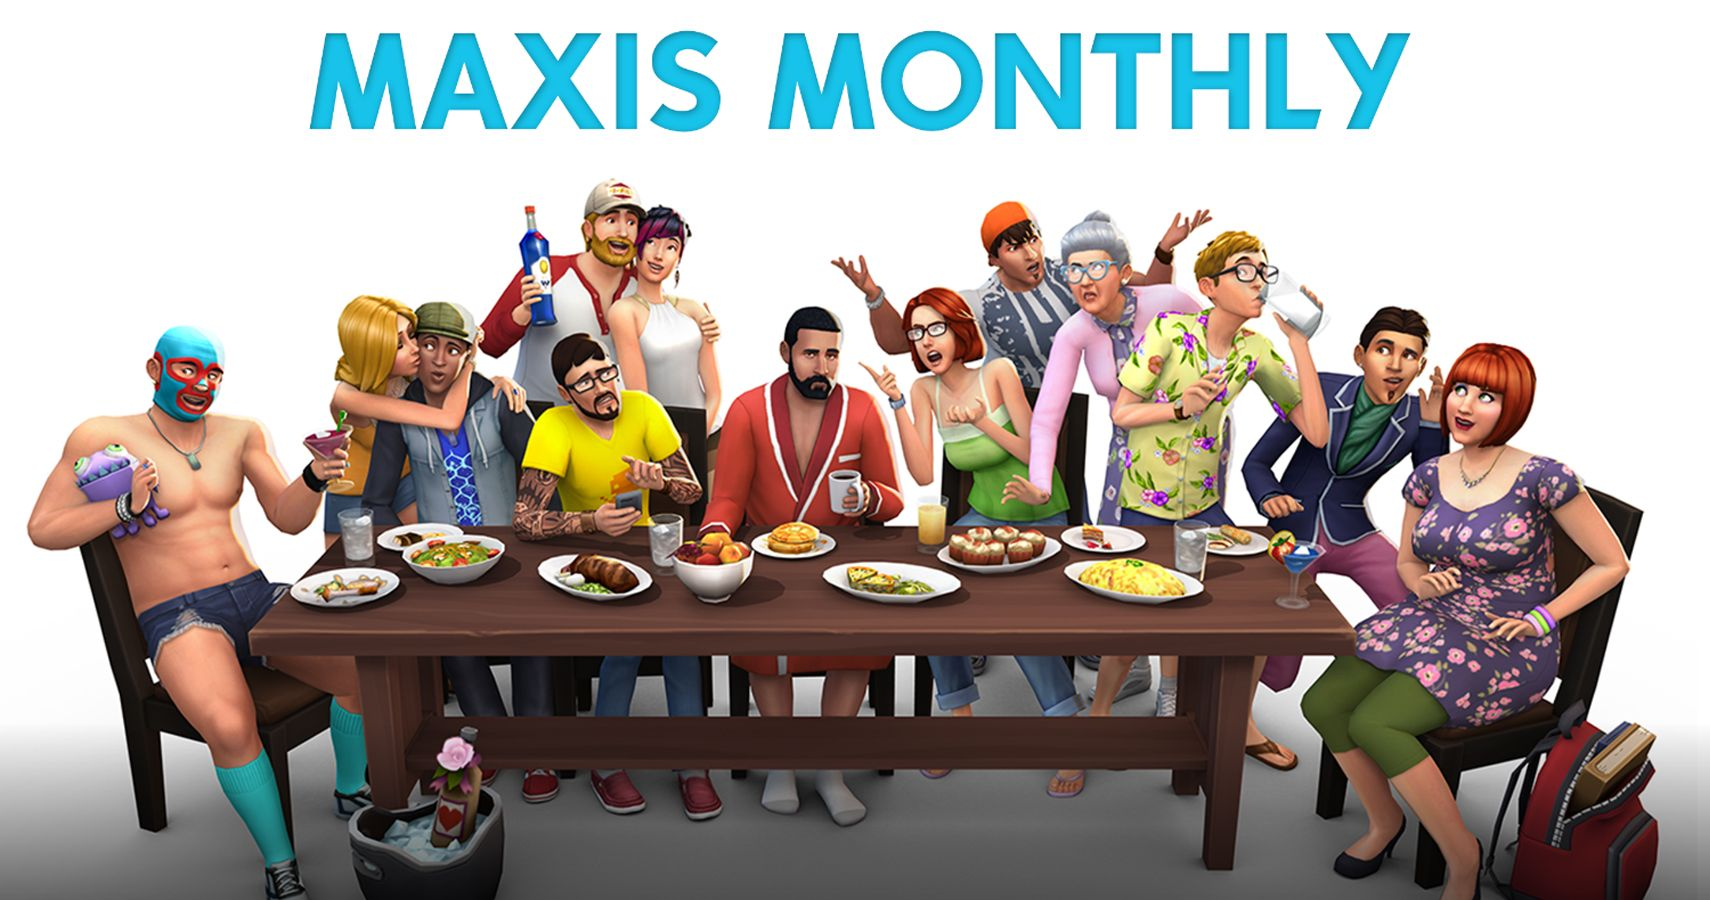 Sims 4 Team Announces Multiple Expansions In The Next 6 Months